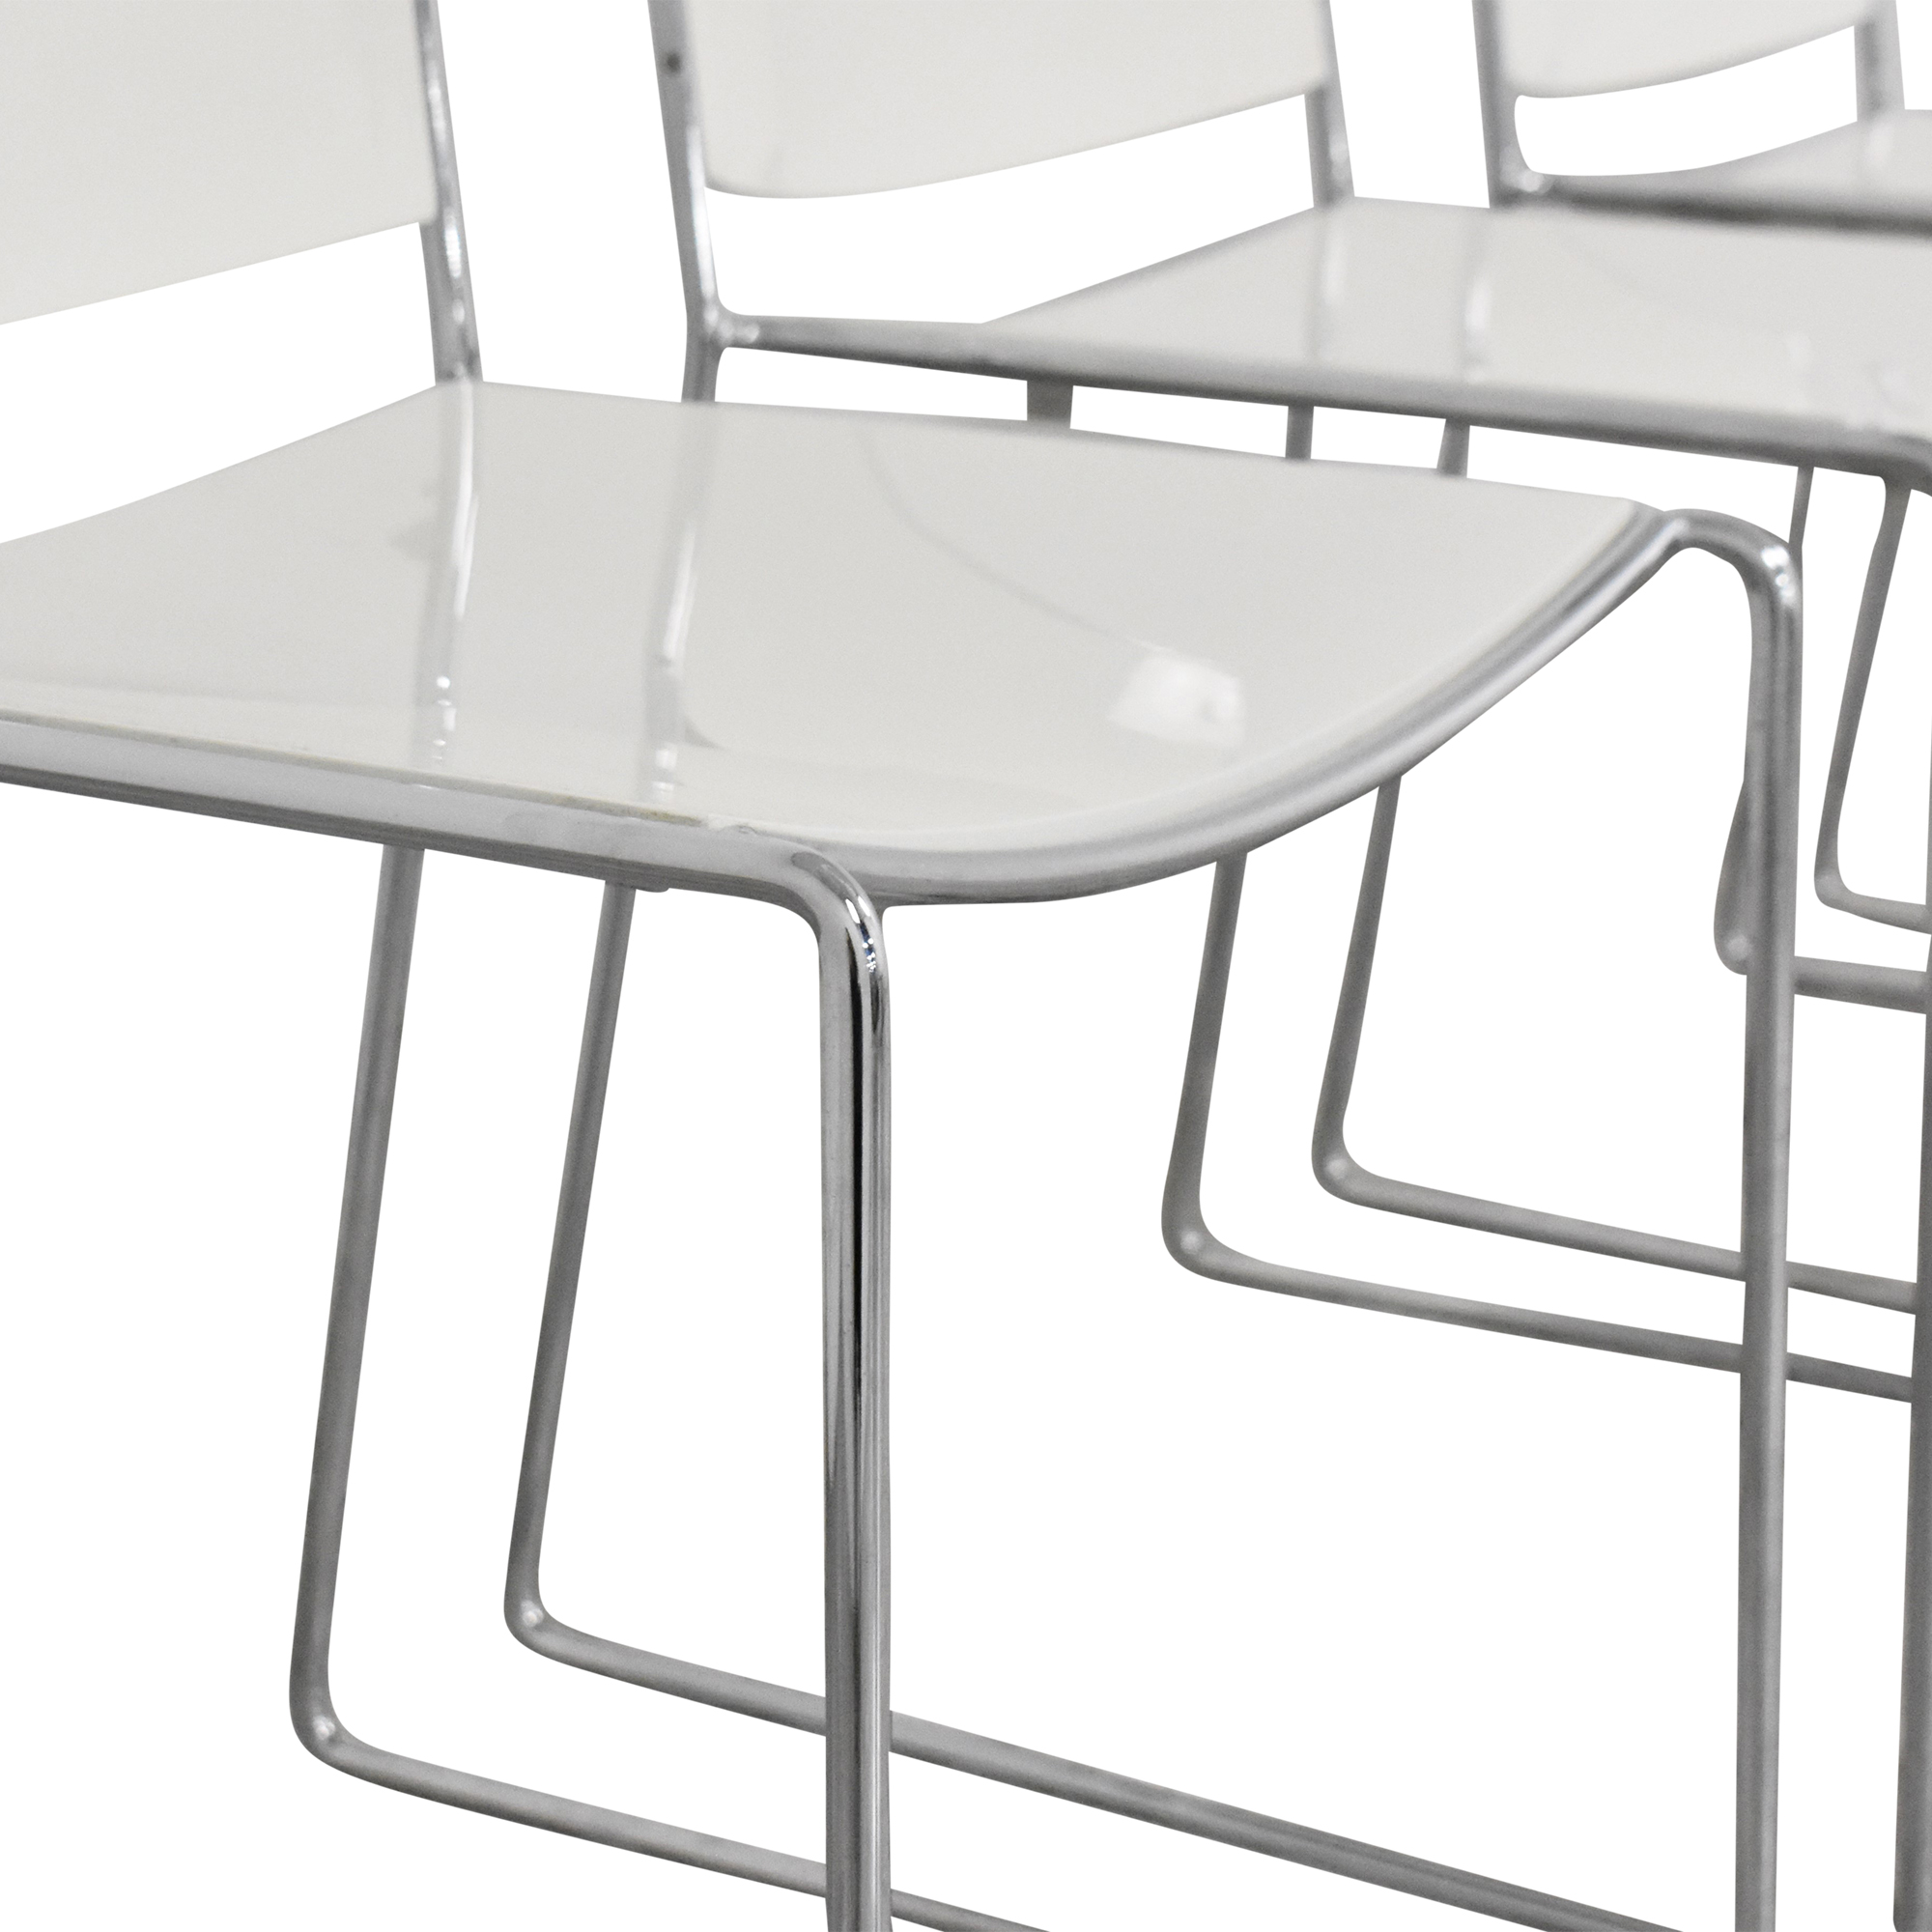 Porro Porro Spindle Chairs by Piero Lissoni for sale